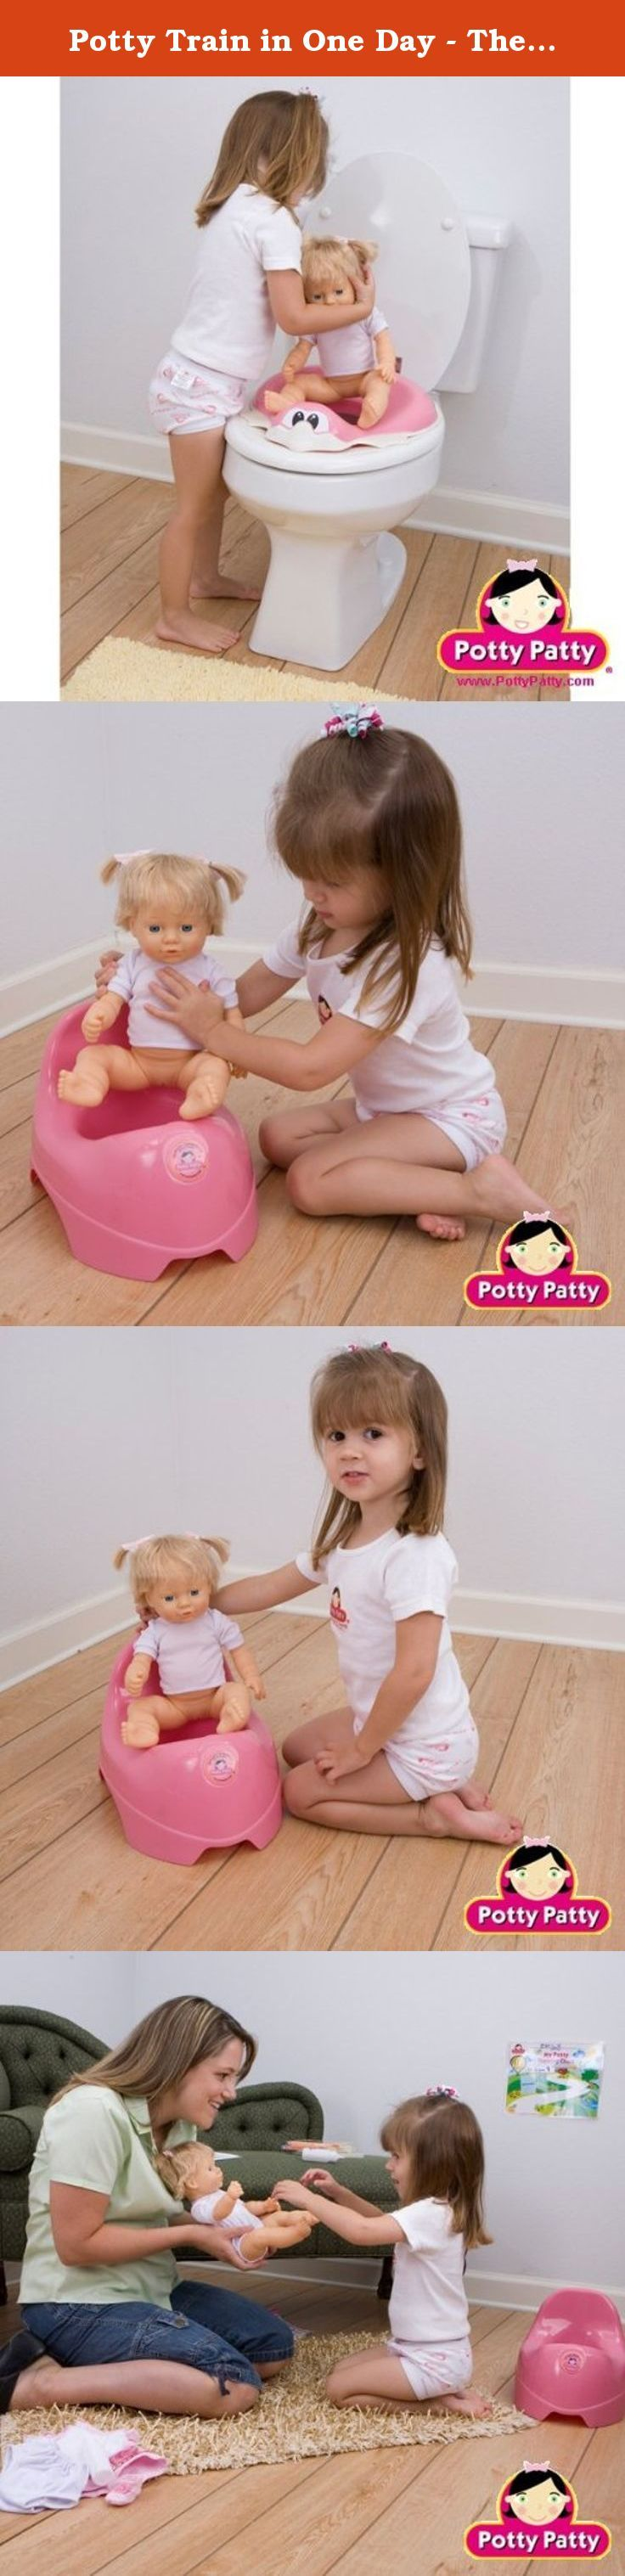 Potty Train in One Day - The Complete System for Girls ...